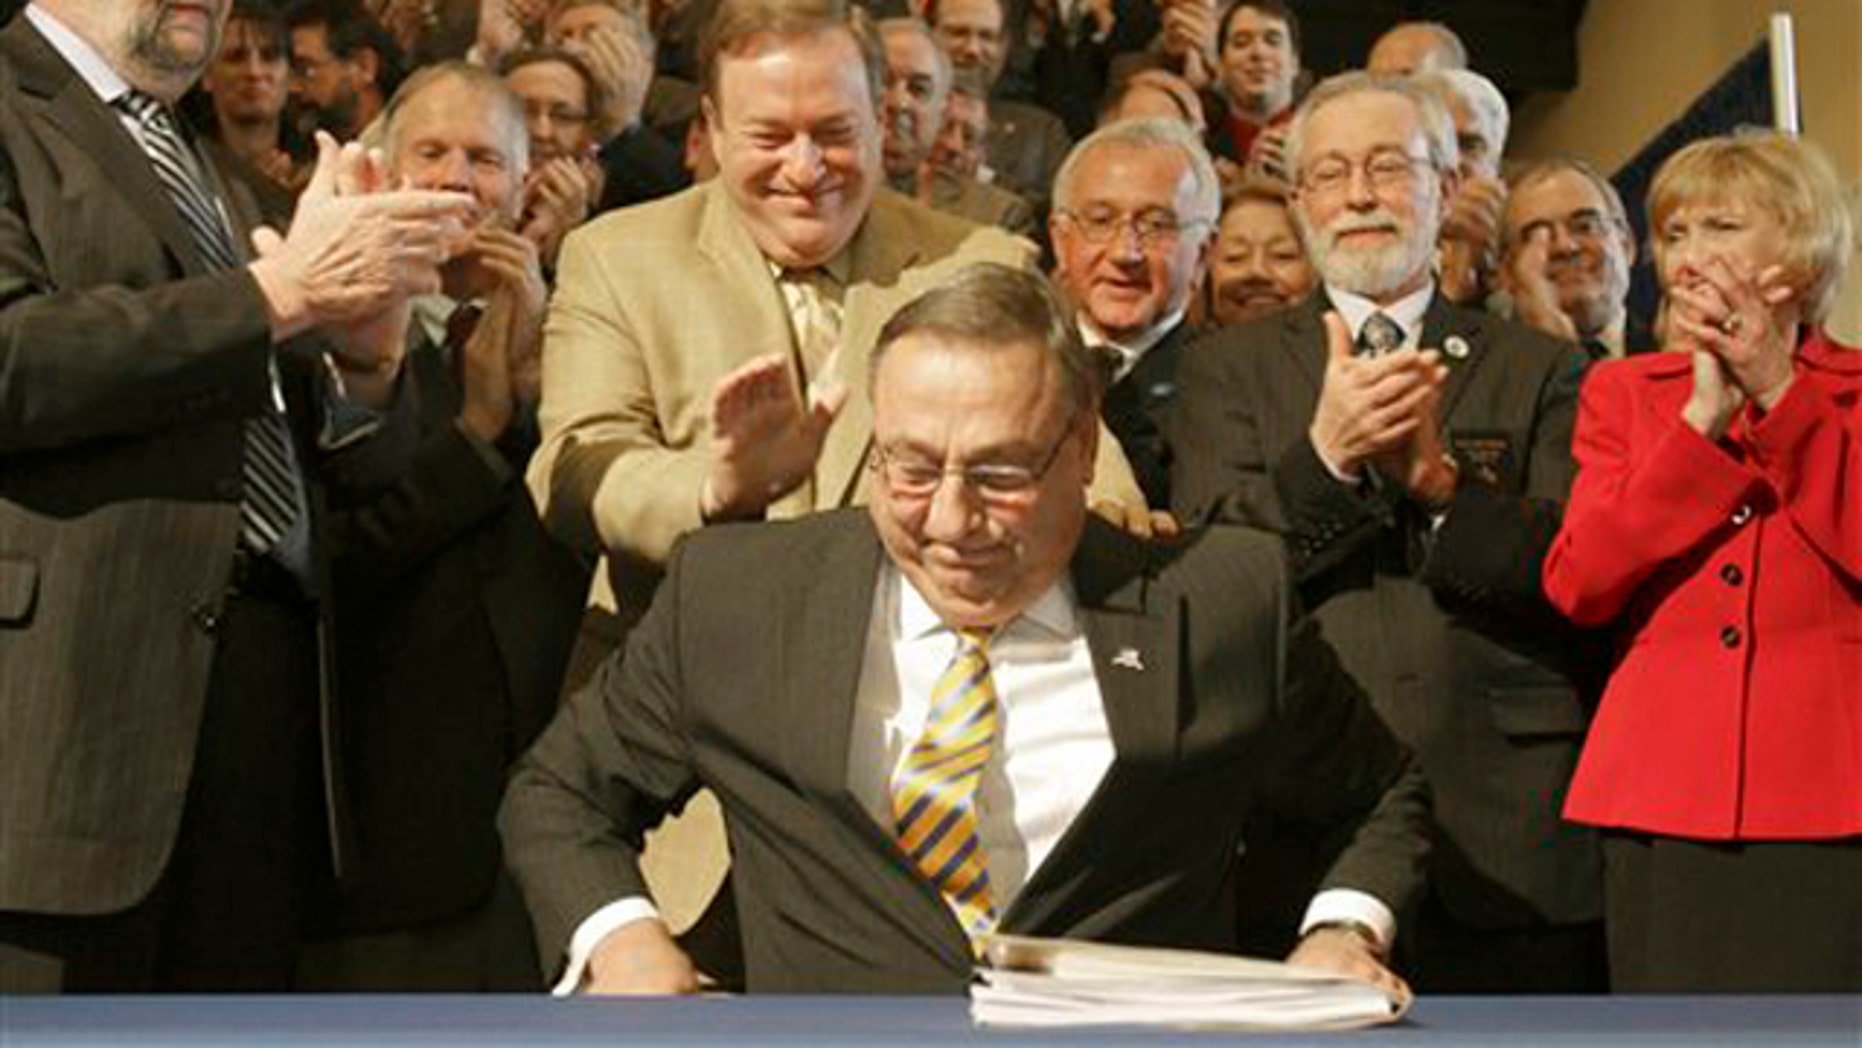 Maine Gov. Paul LePage smiles as he is congratulated after signing the health insurance overhaul bill at a State House signing ceremony in Augusta, Maine on May 17.